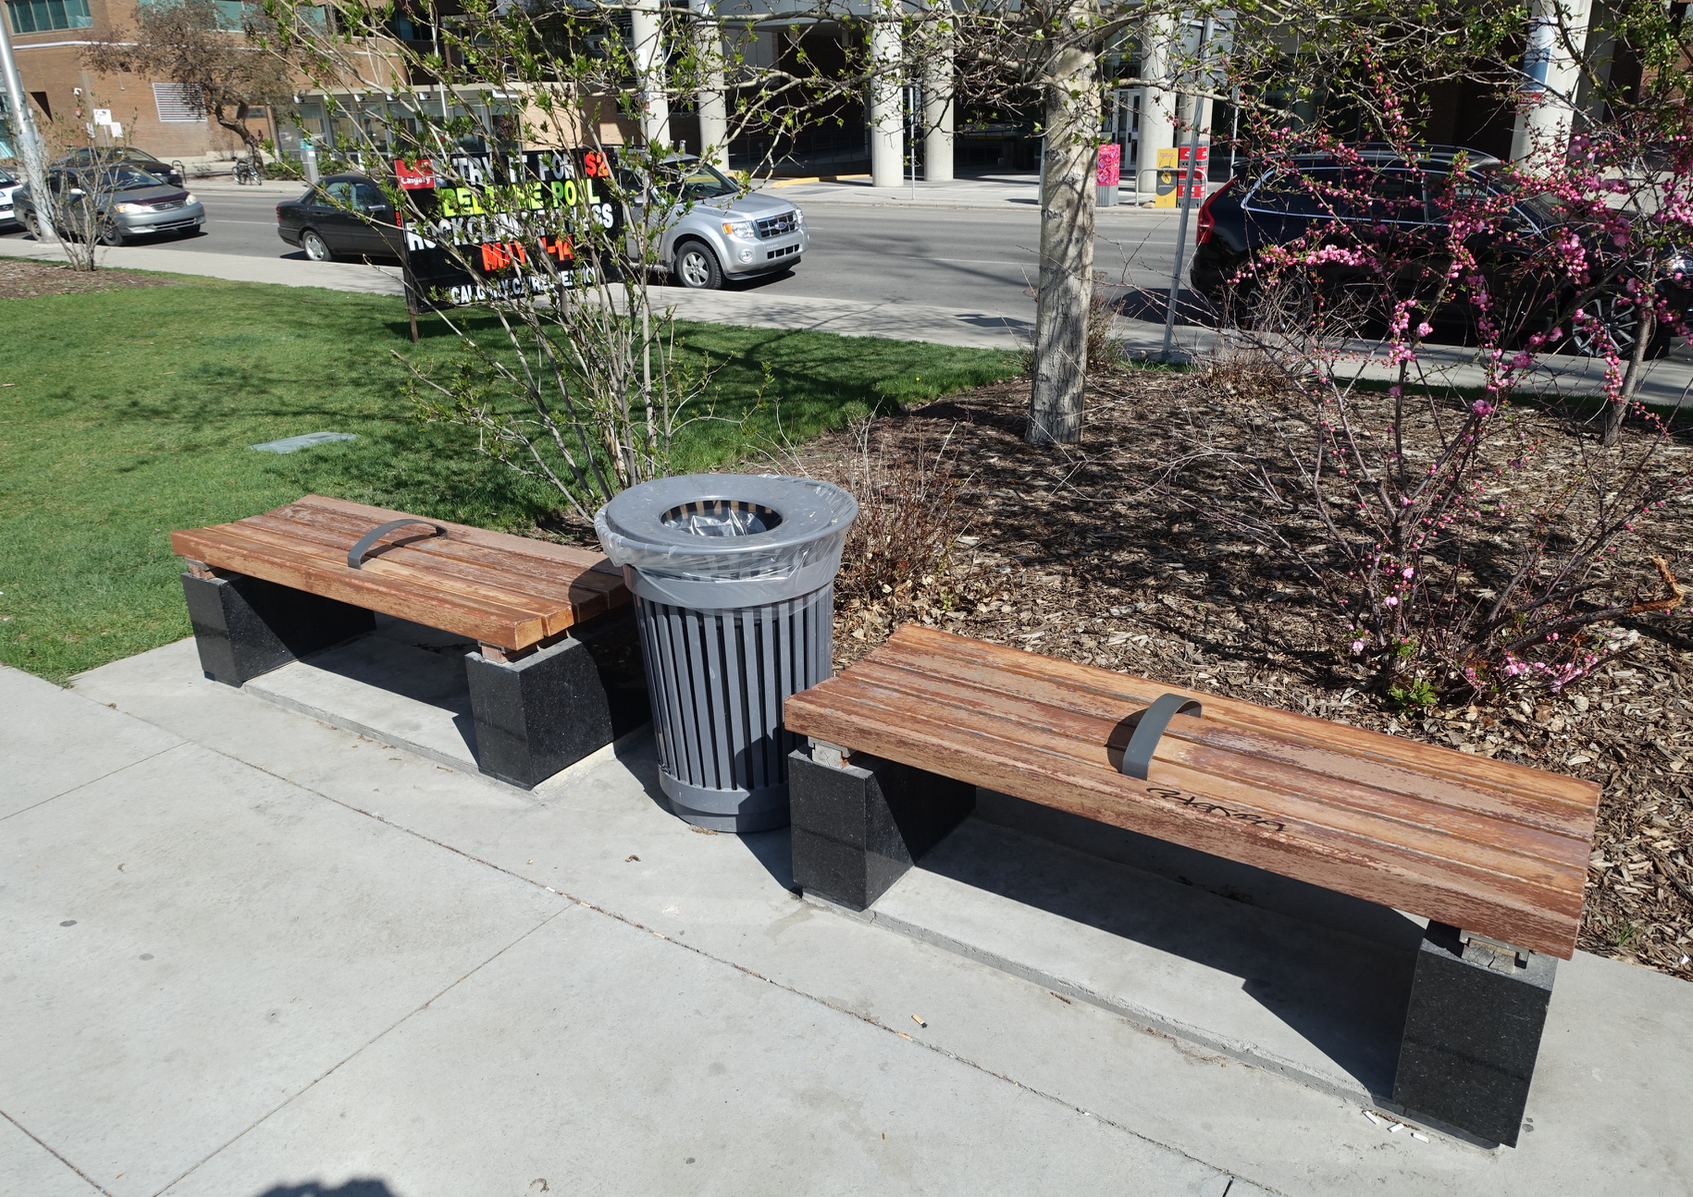 Park benches designed so pickers can't sleep on them.